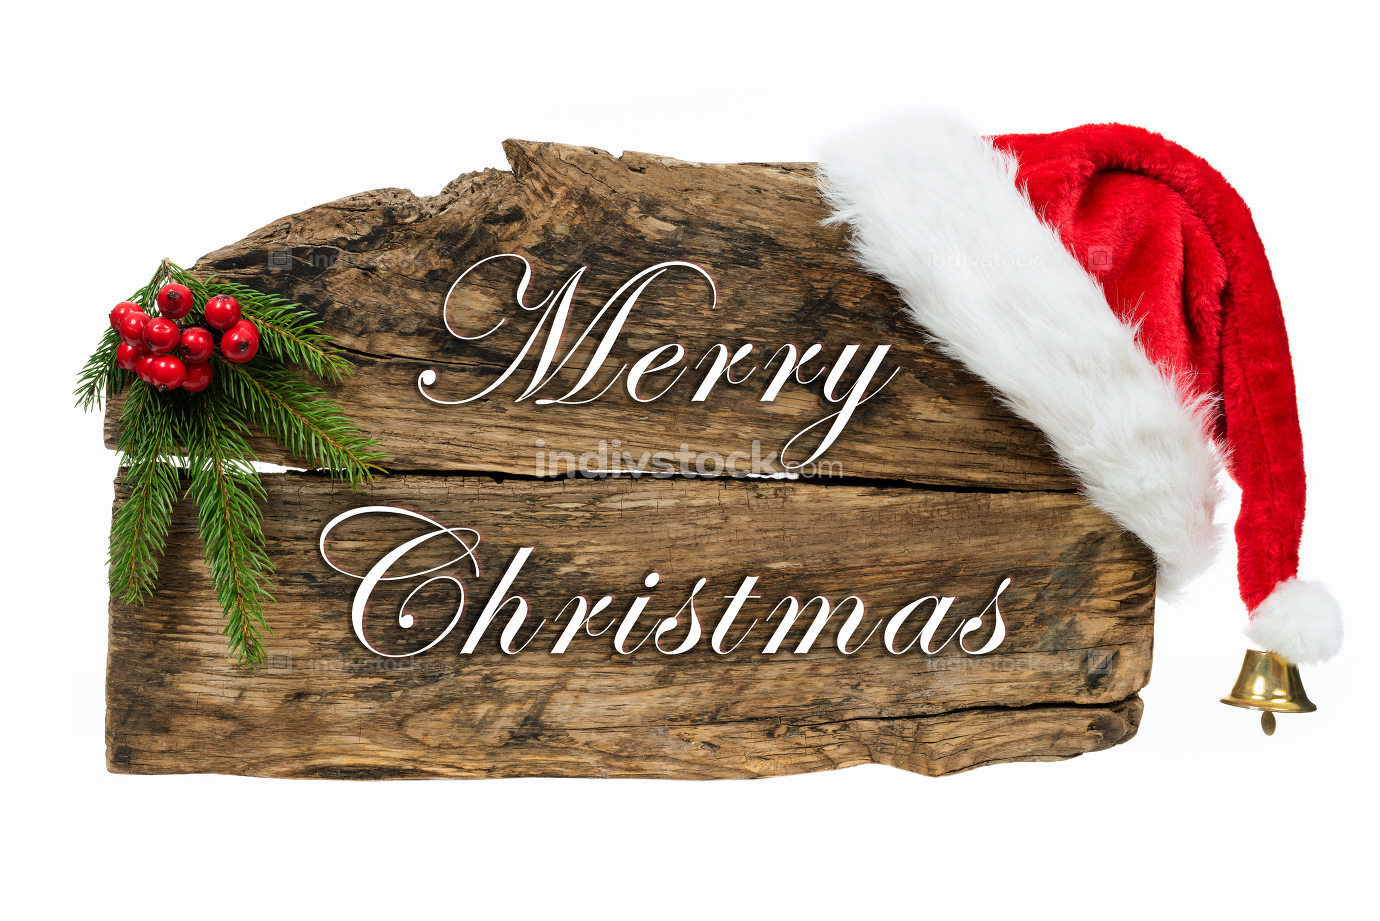 Christmas wooden board sign